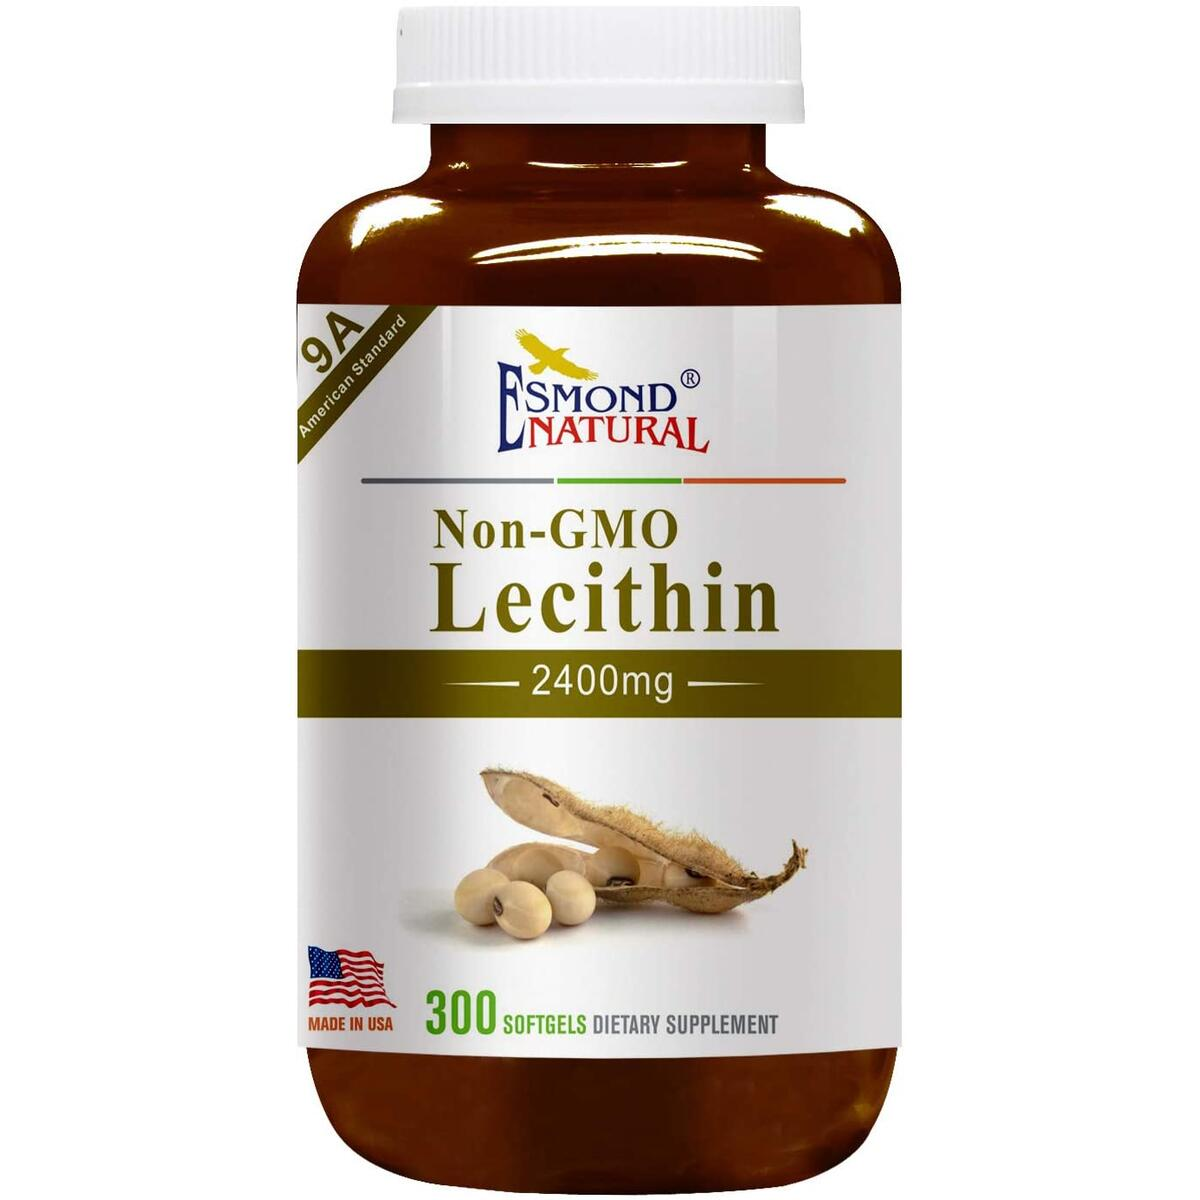 (5 Count, 25% Off) Esmond Natural: Lecithin (Non-GMO), GMP, Natural Product Assn Certified, Made in USA-2400mg, 1500 Softgels